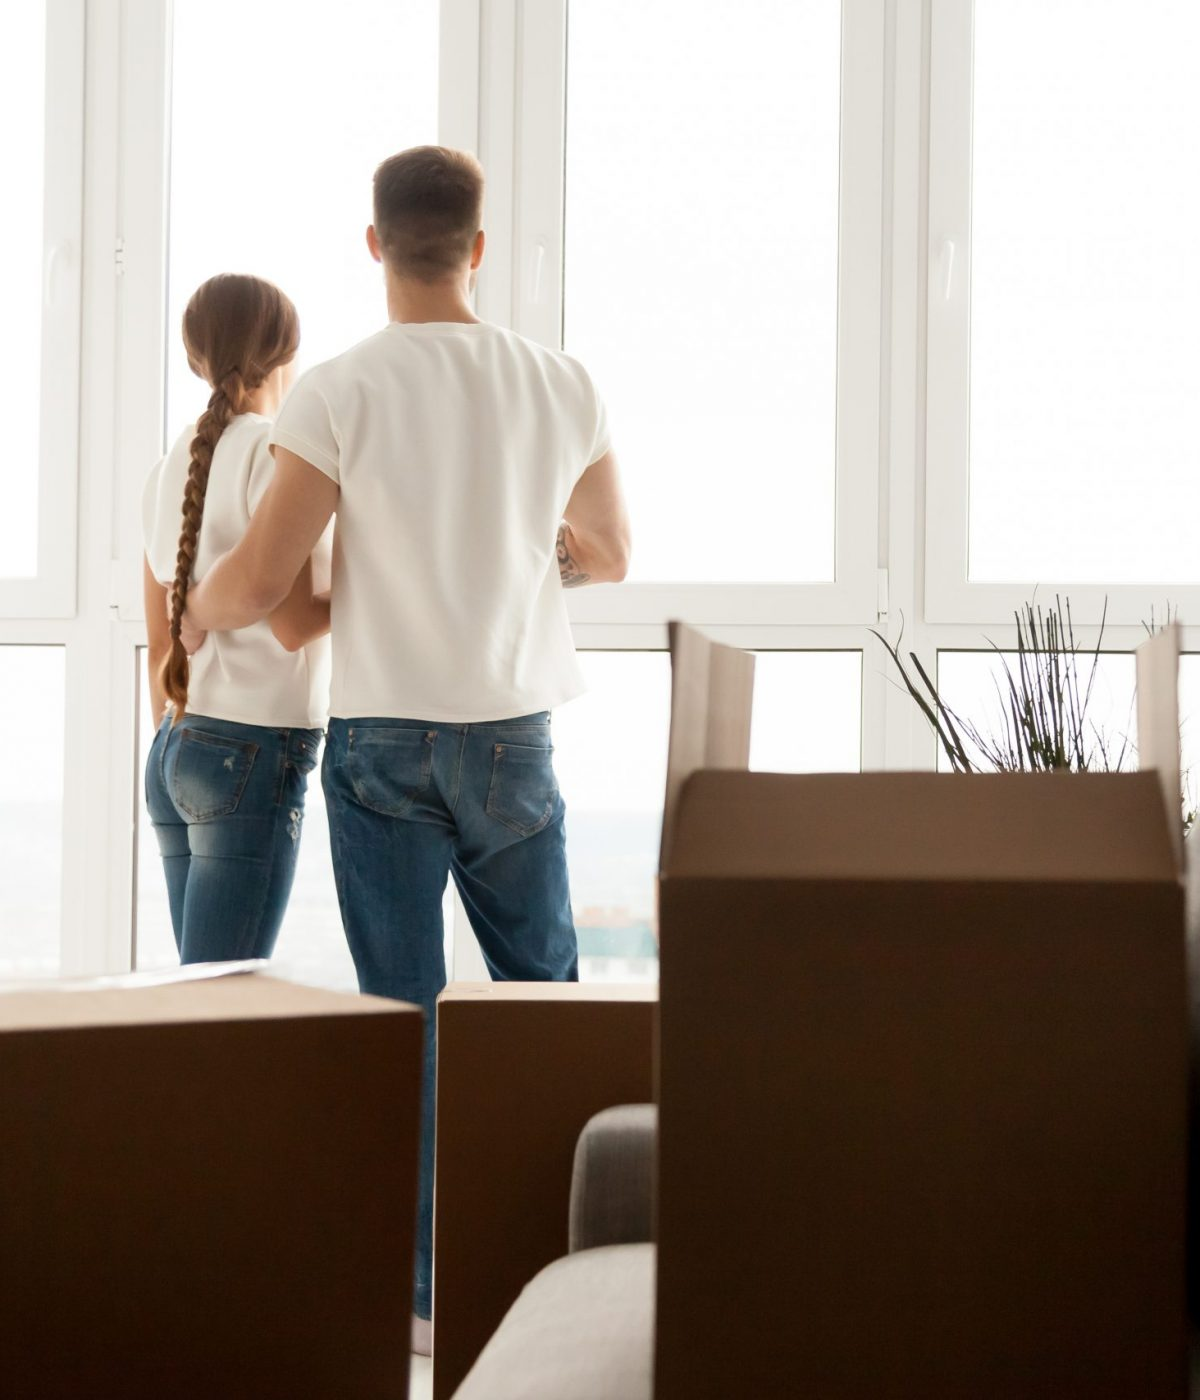 Millennial couple stand near window looking far away after moving in to new home with cardboard boxes, husband and wife plan future together, hugging seeing new perspectives. New beginning concept